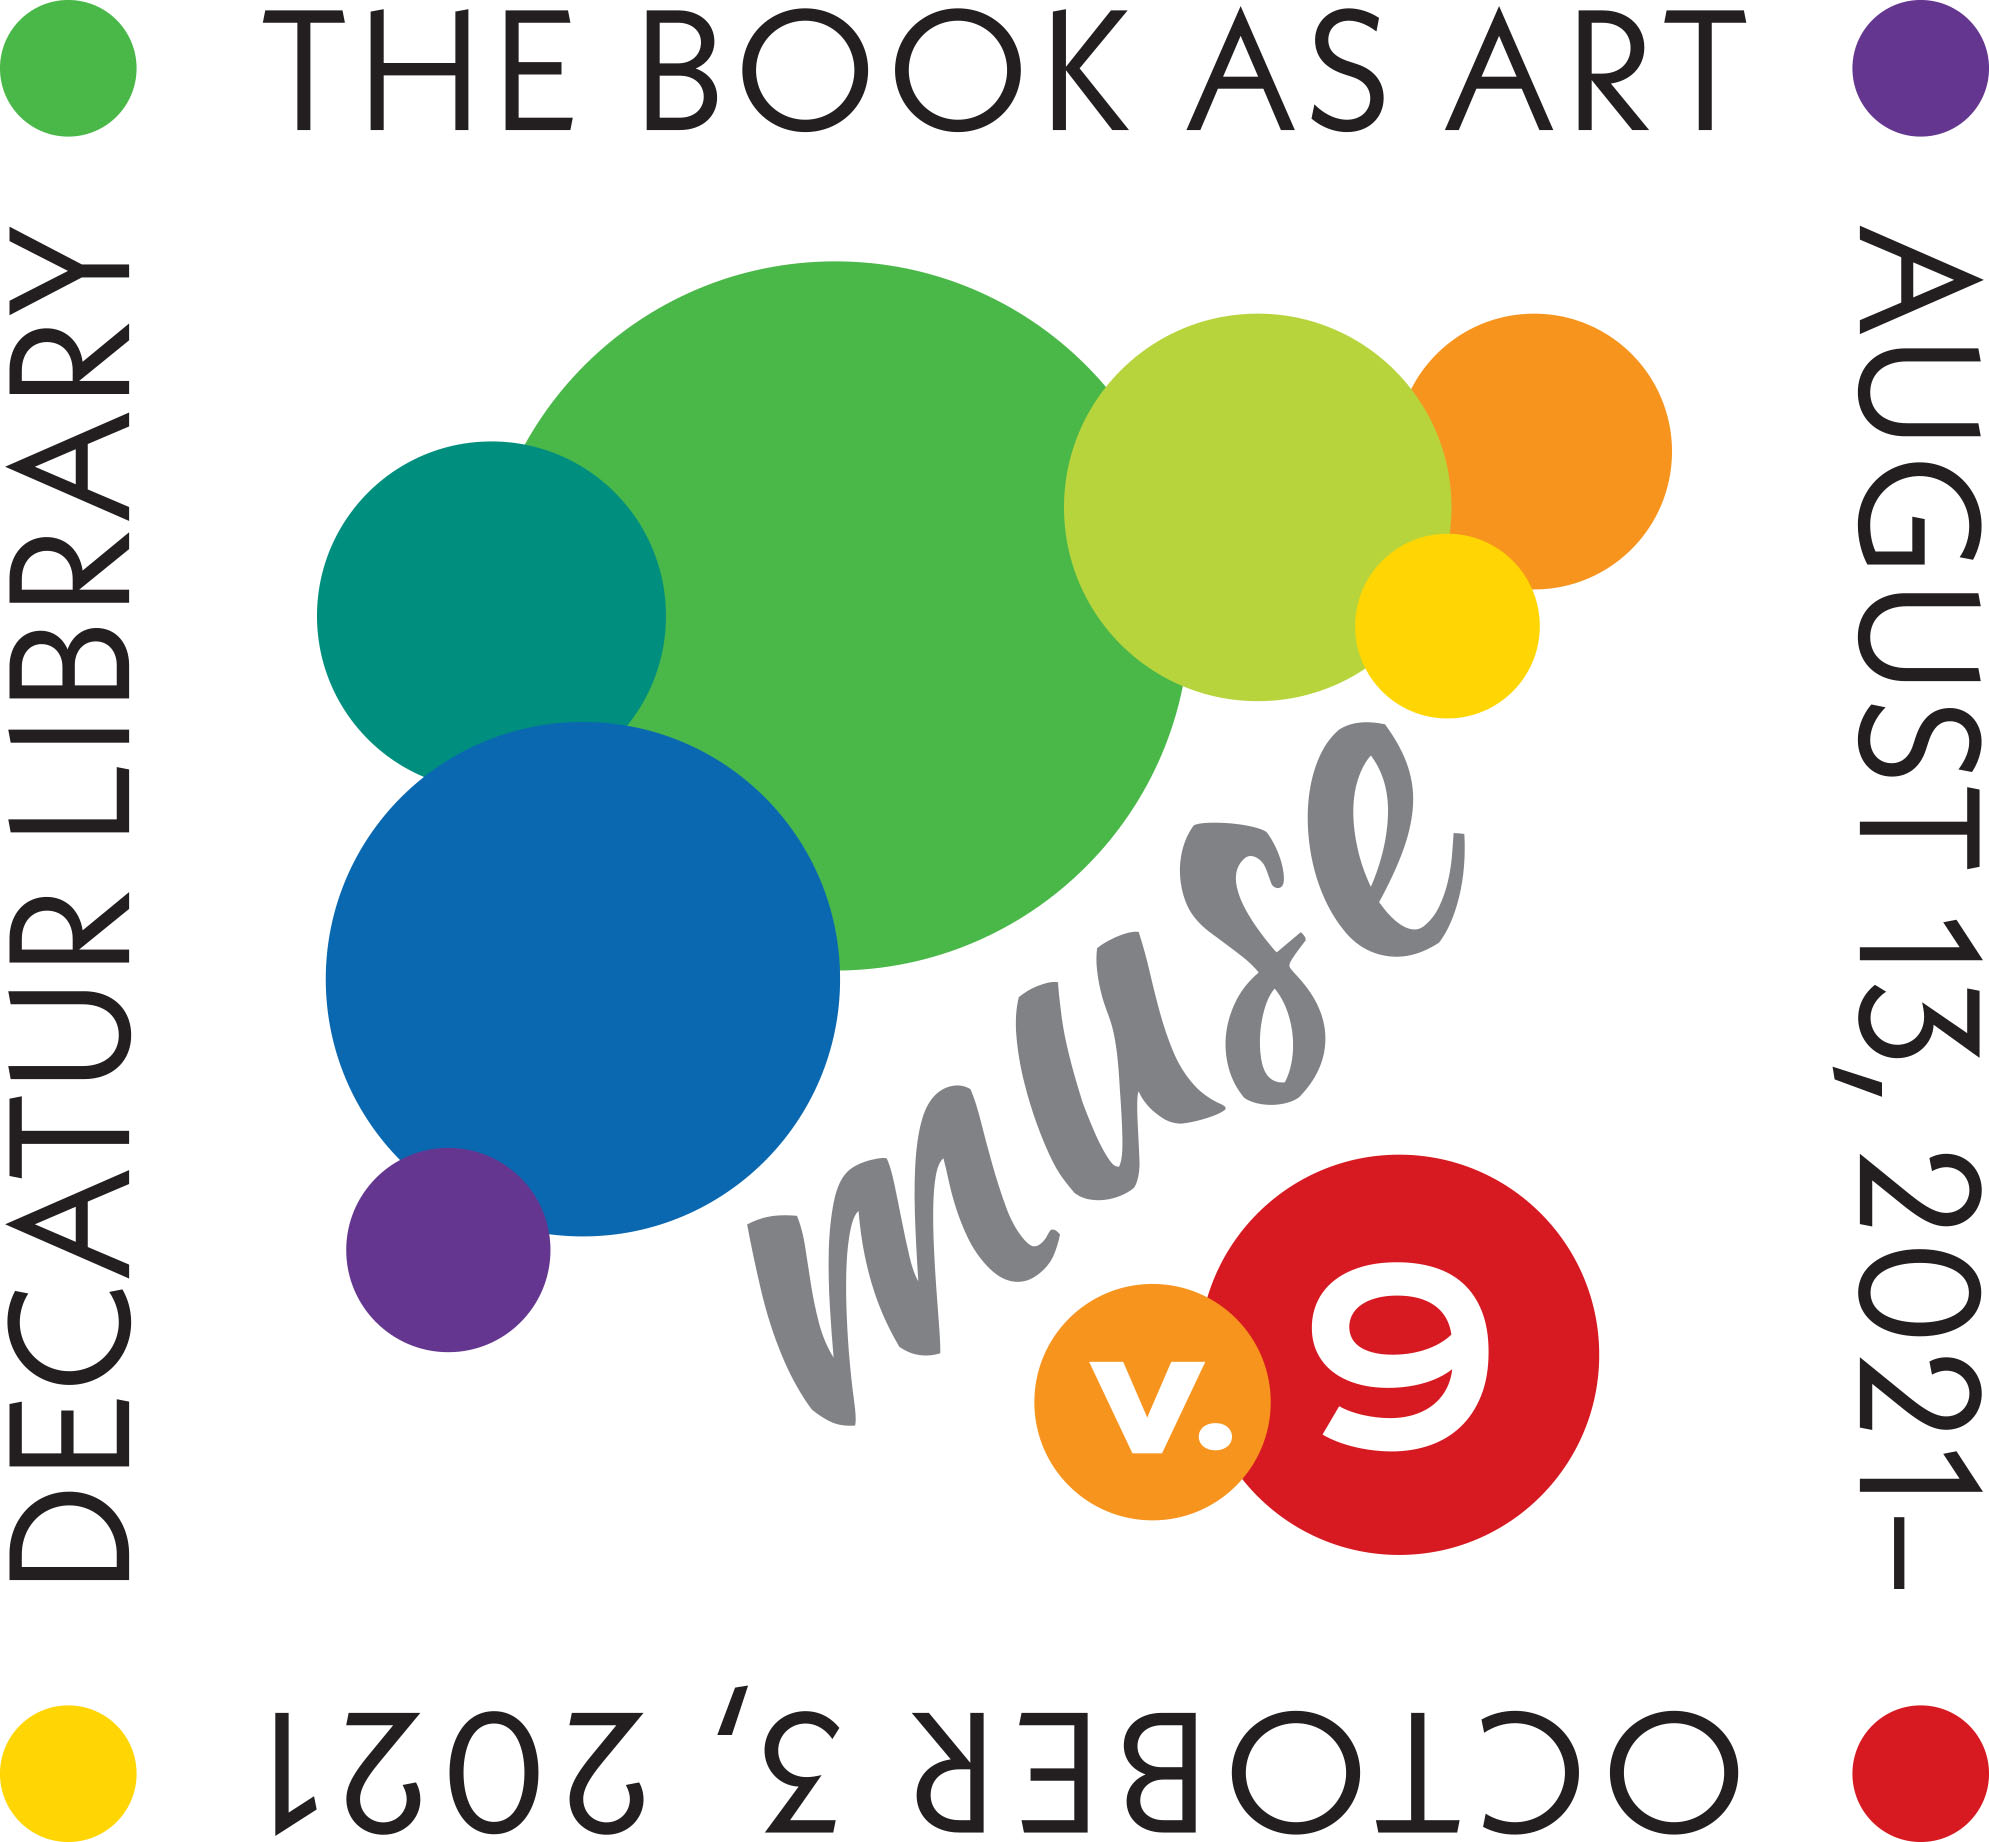 Book As Art v. 9: Muse